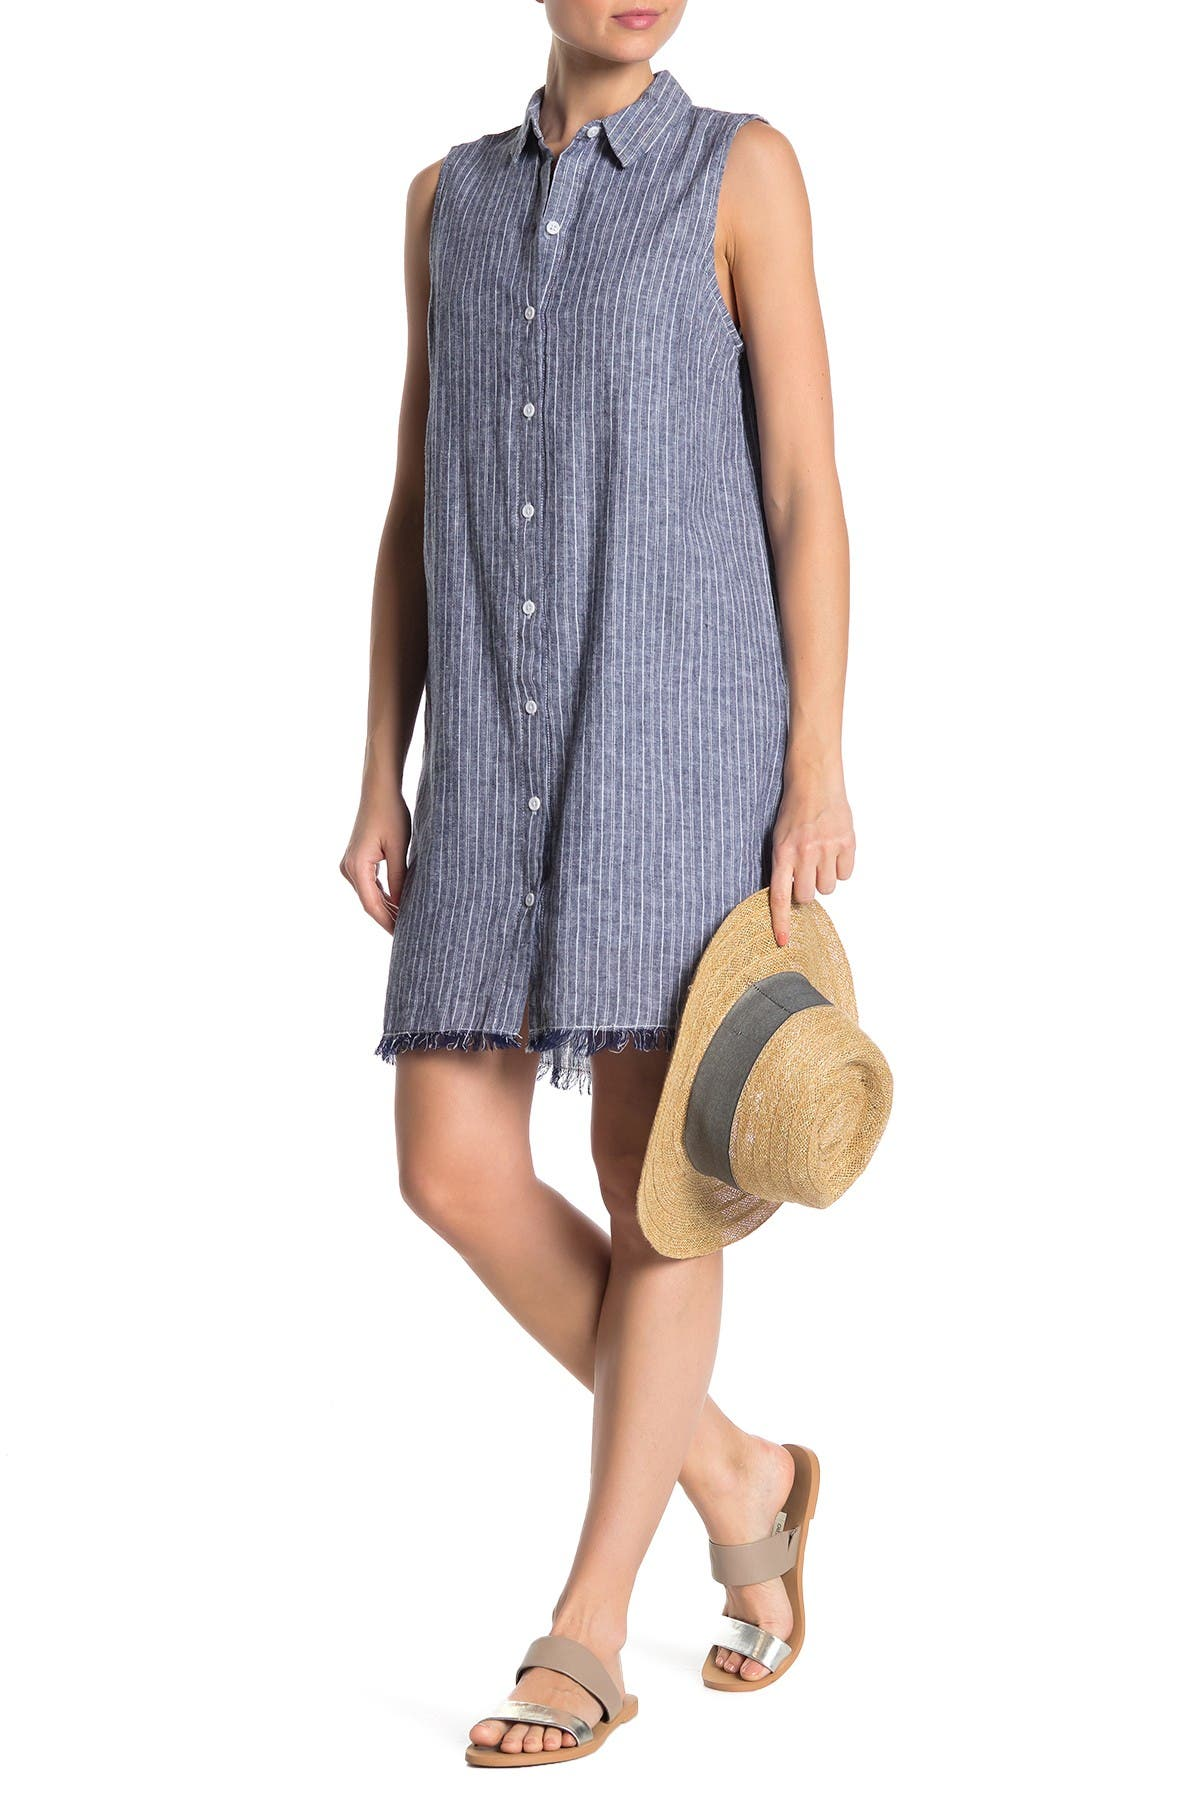 Image of BeachLunchLounge Striped Linen Blend Button Down Shirt Dress